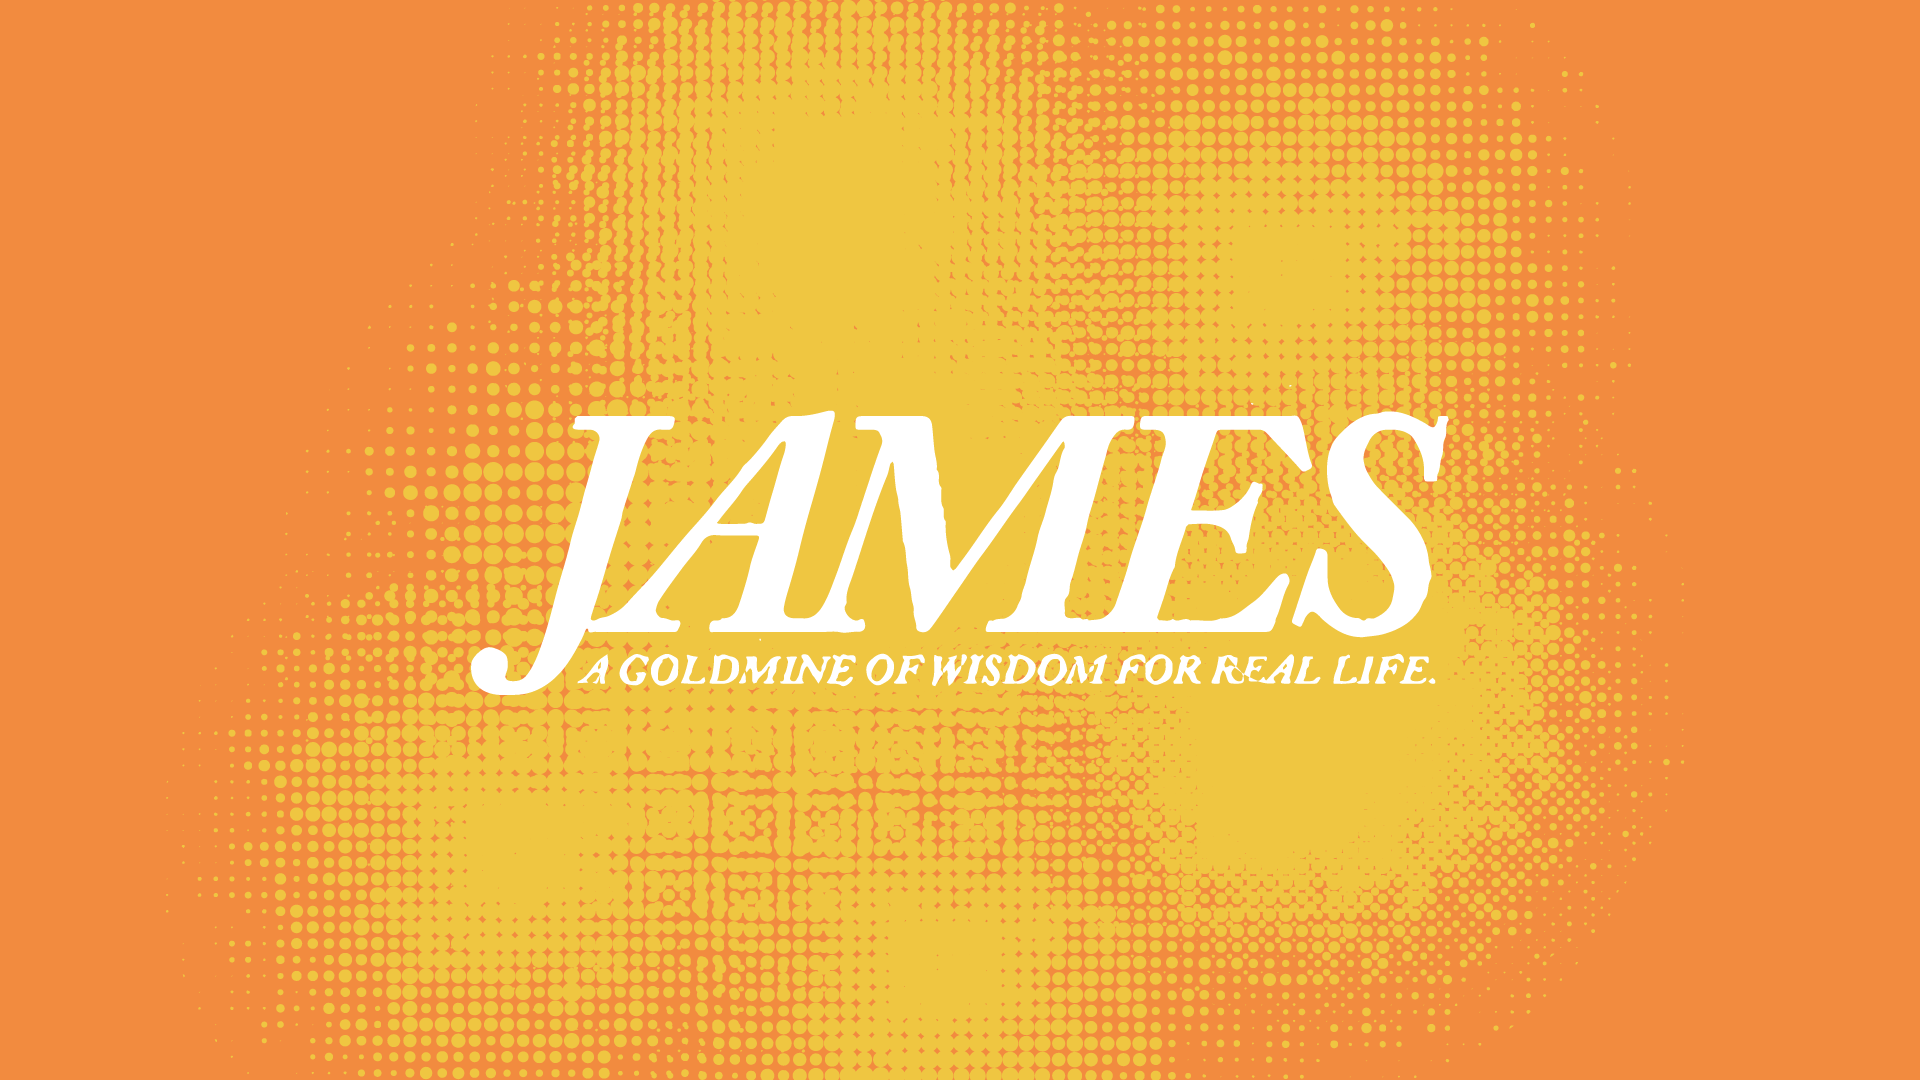 Do you agree with James?